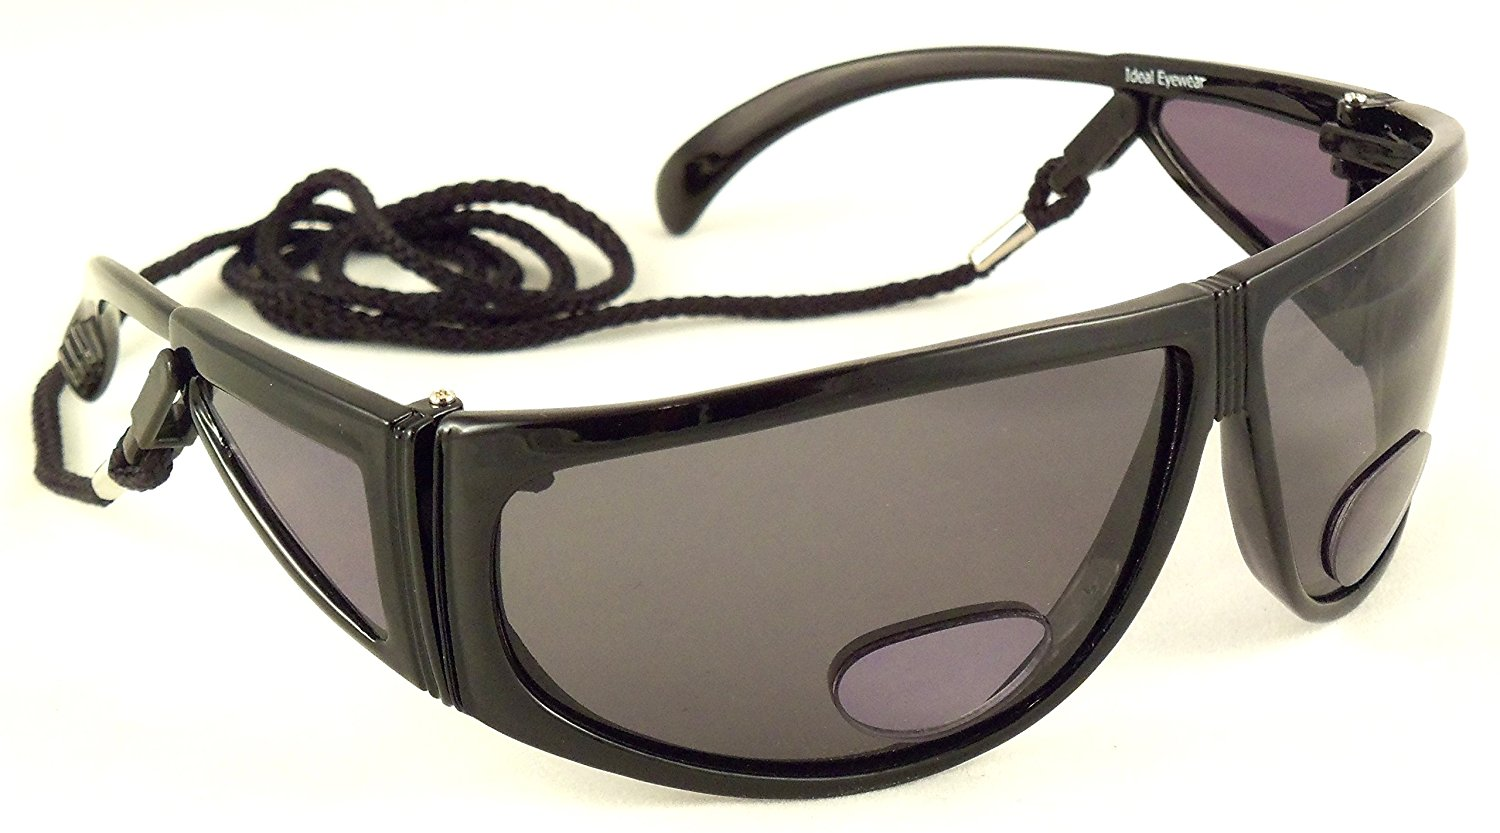 ae13baffdff5 Get Quotations · Polarized Bifocal Sunglasses by Ideal Eyewear - Sun  Readers with Retention Cord